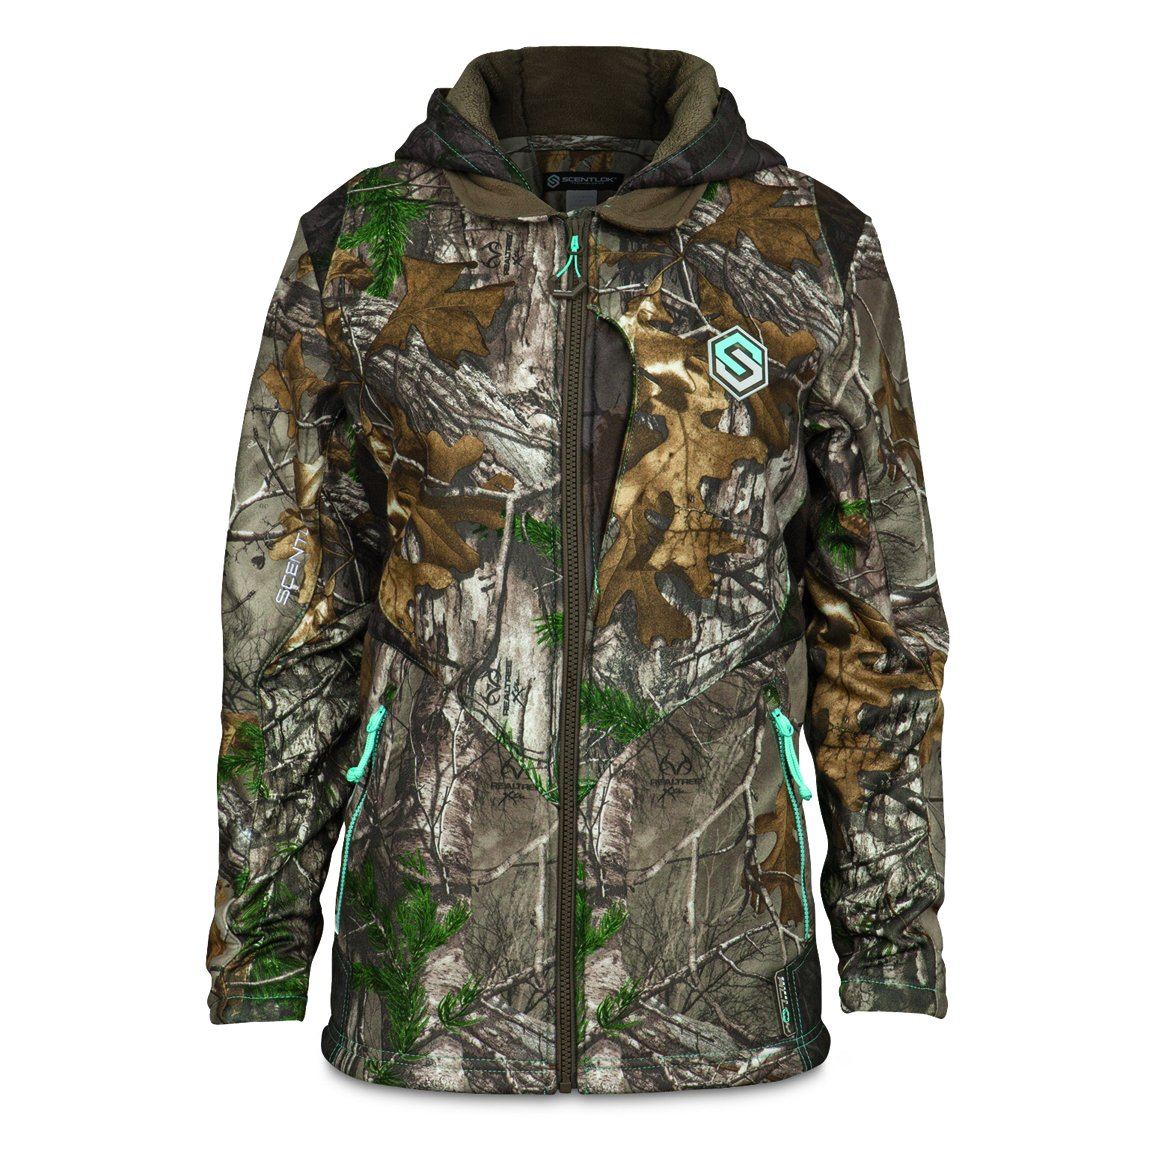 ScentLok Women's Full Season TAKTIX Hunting Jacket (Realtree Xtra, Medium) by ScentLok